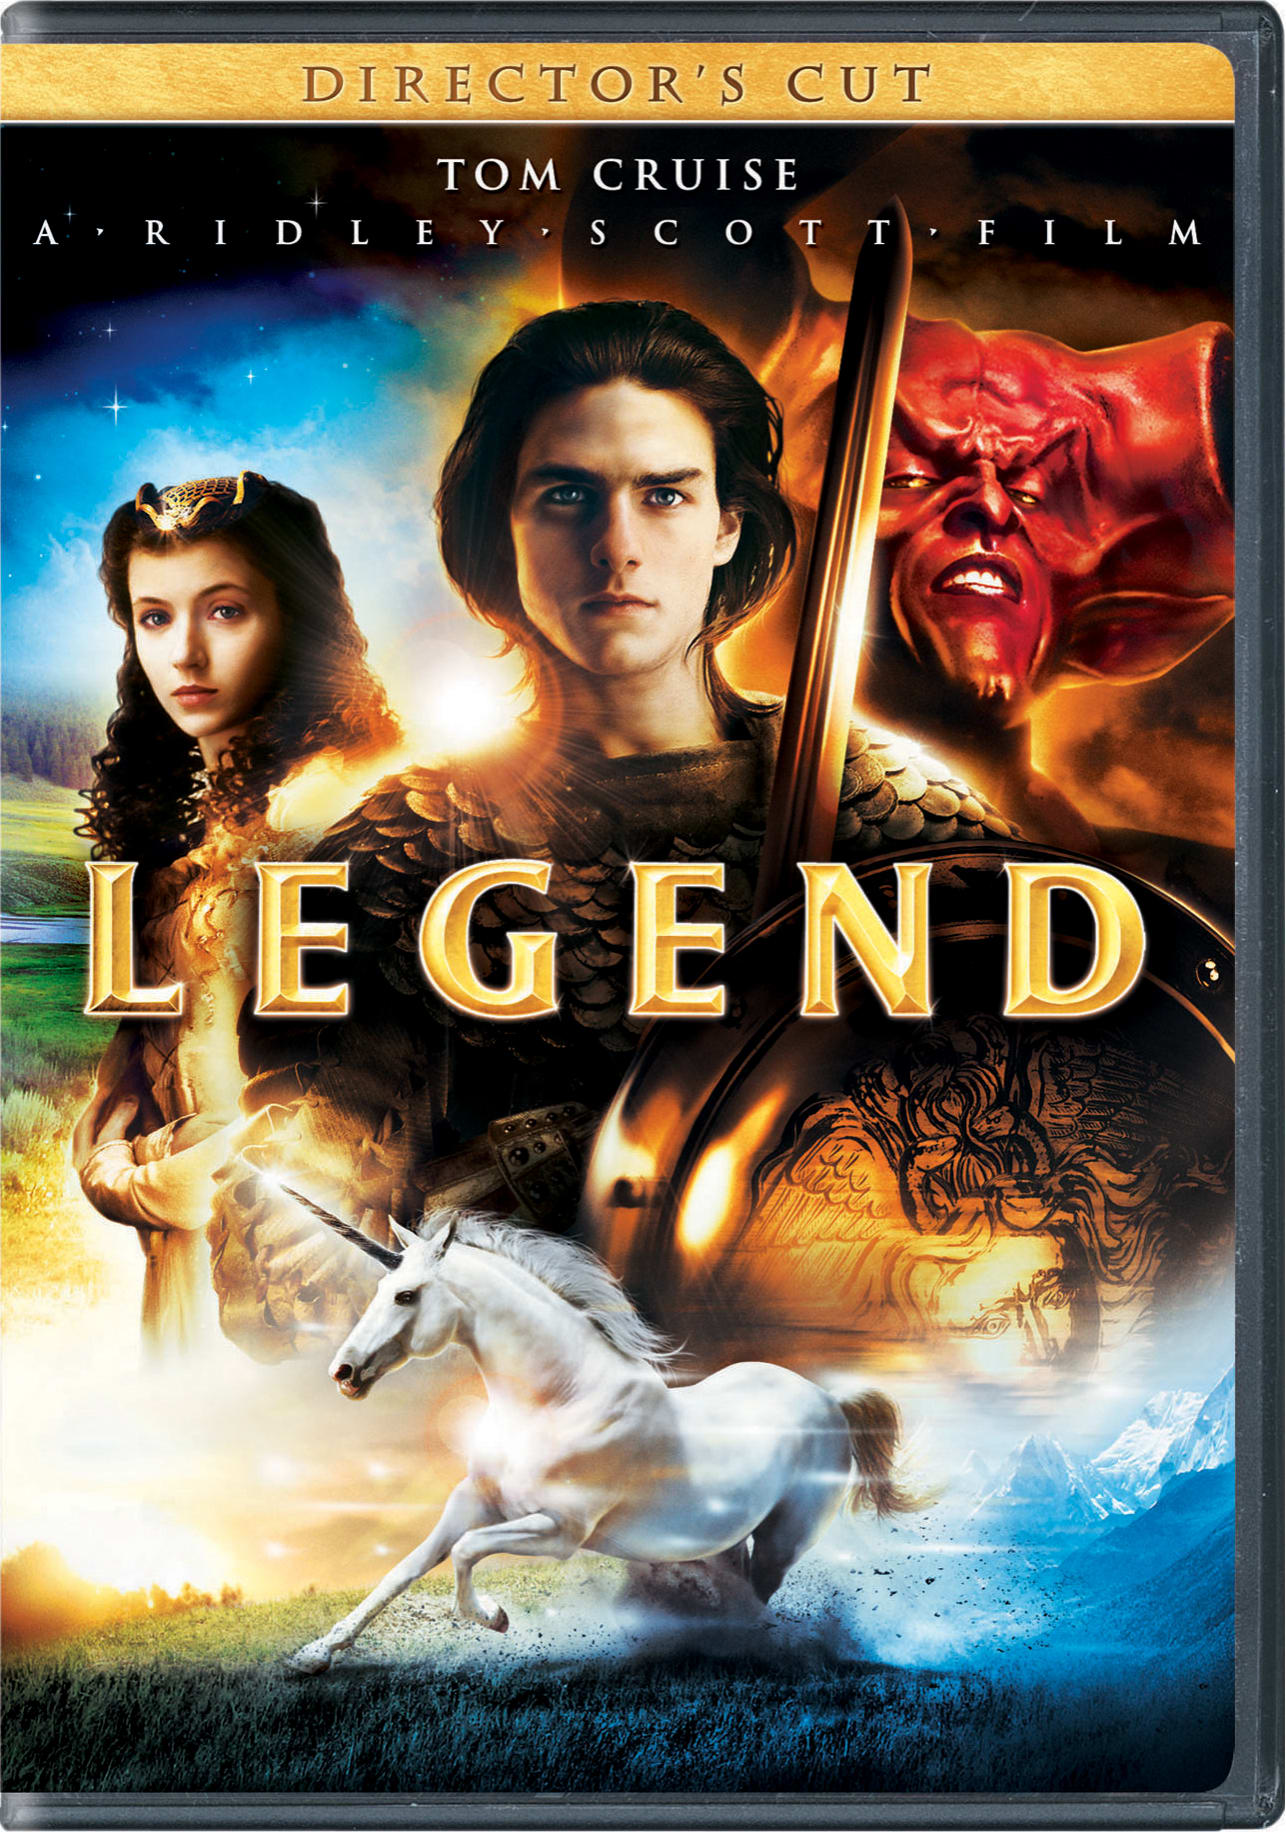 Legend (1986) (Director's Cut) [DVD]